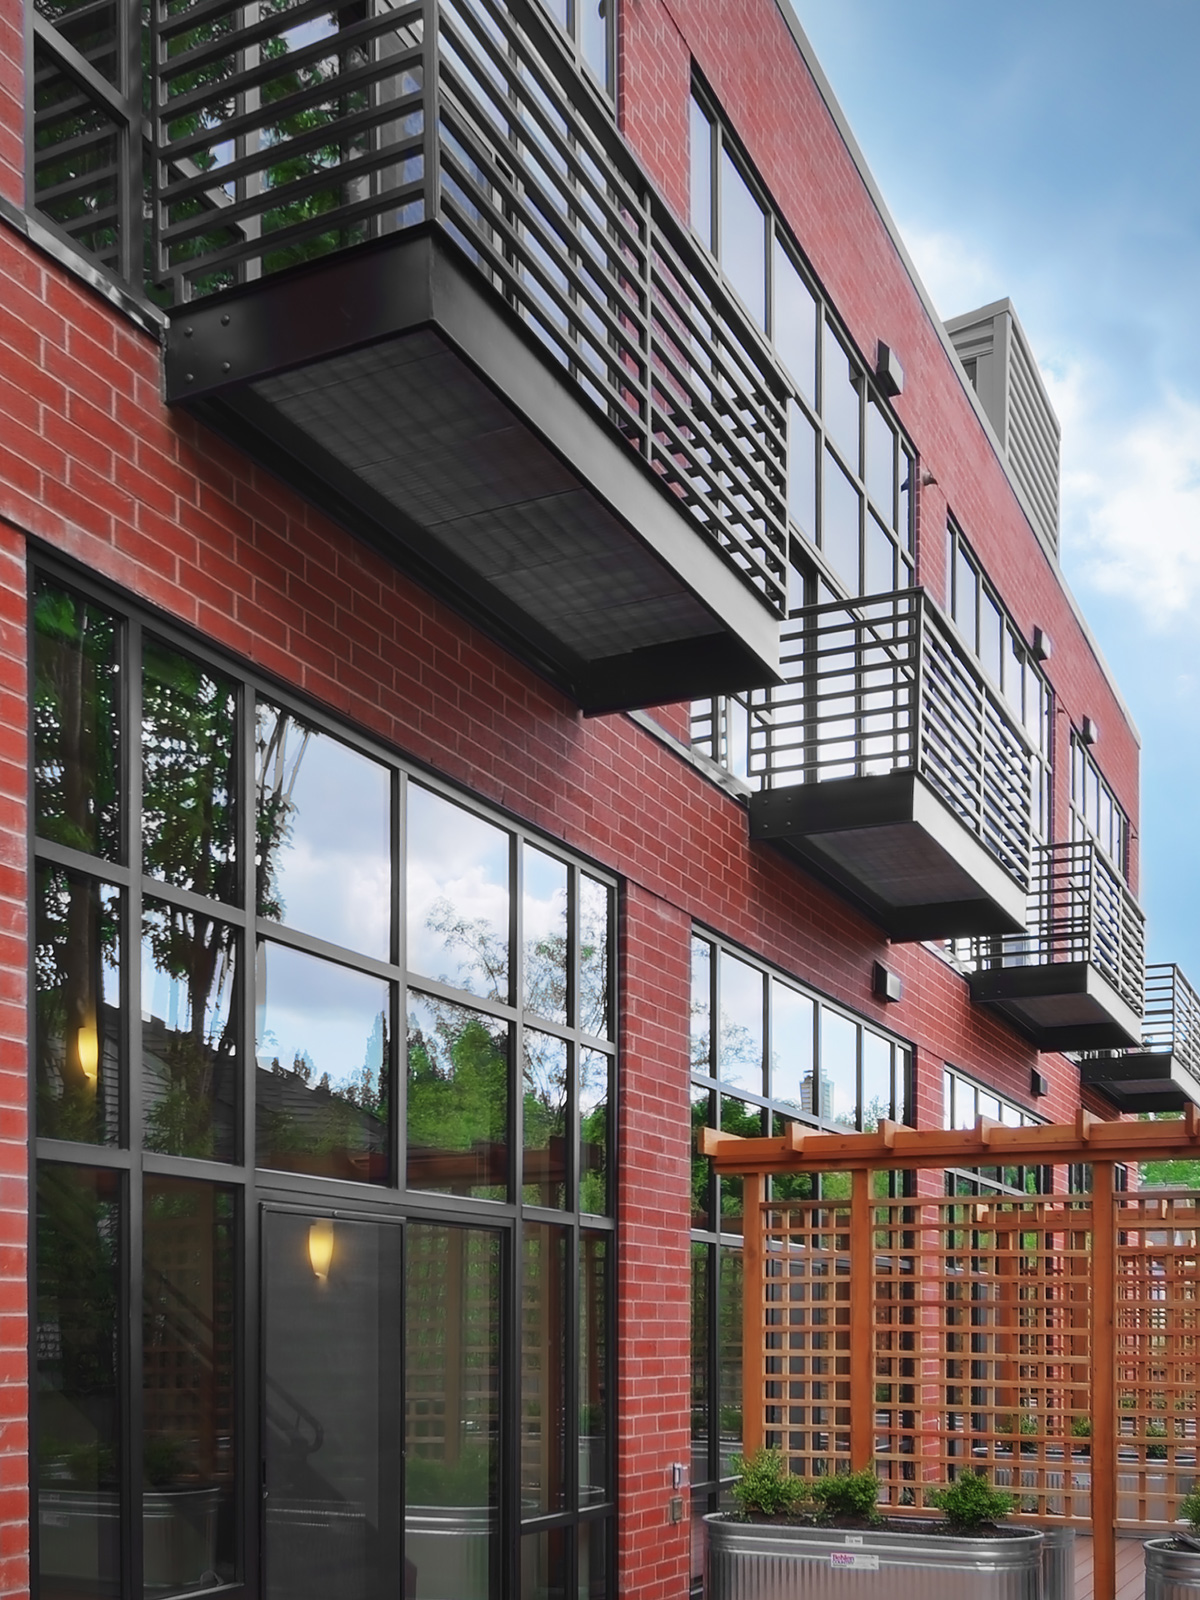 Madison Lofts building exterior balconies and glass windows